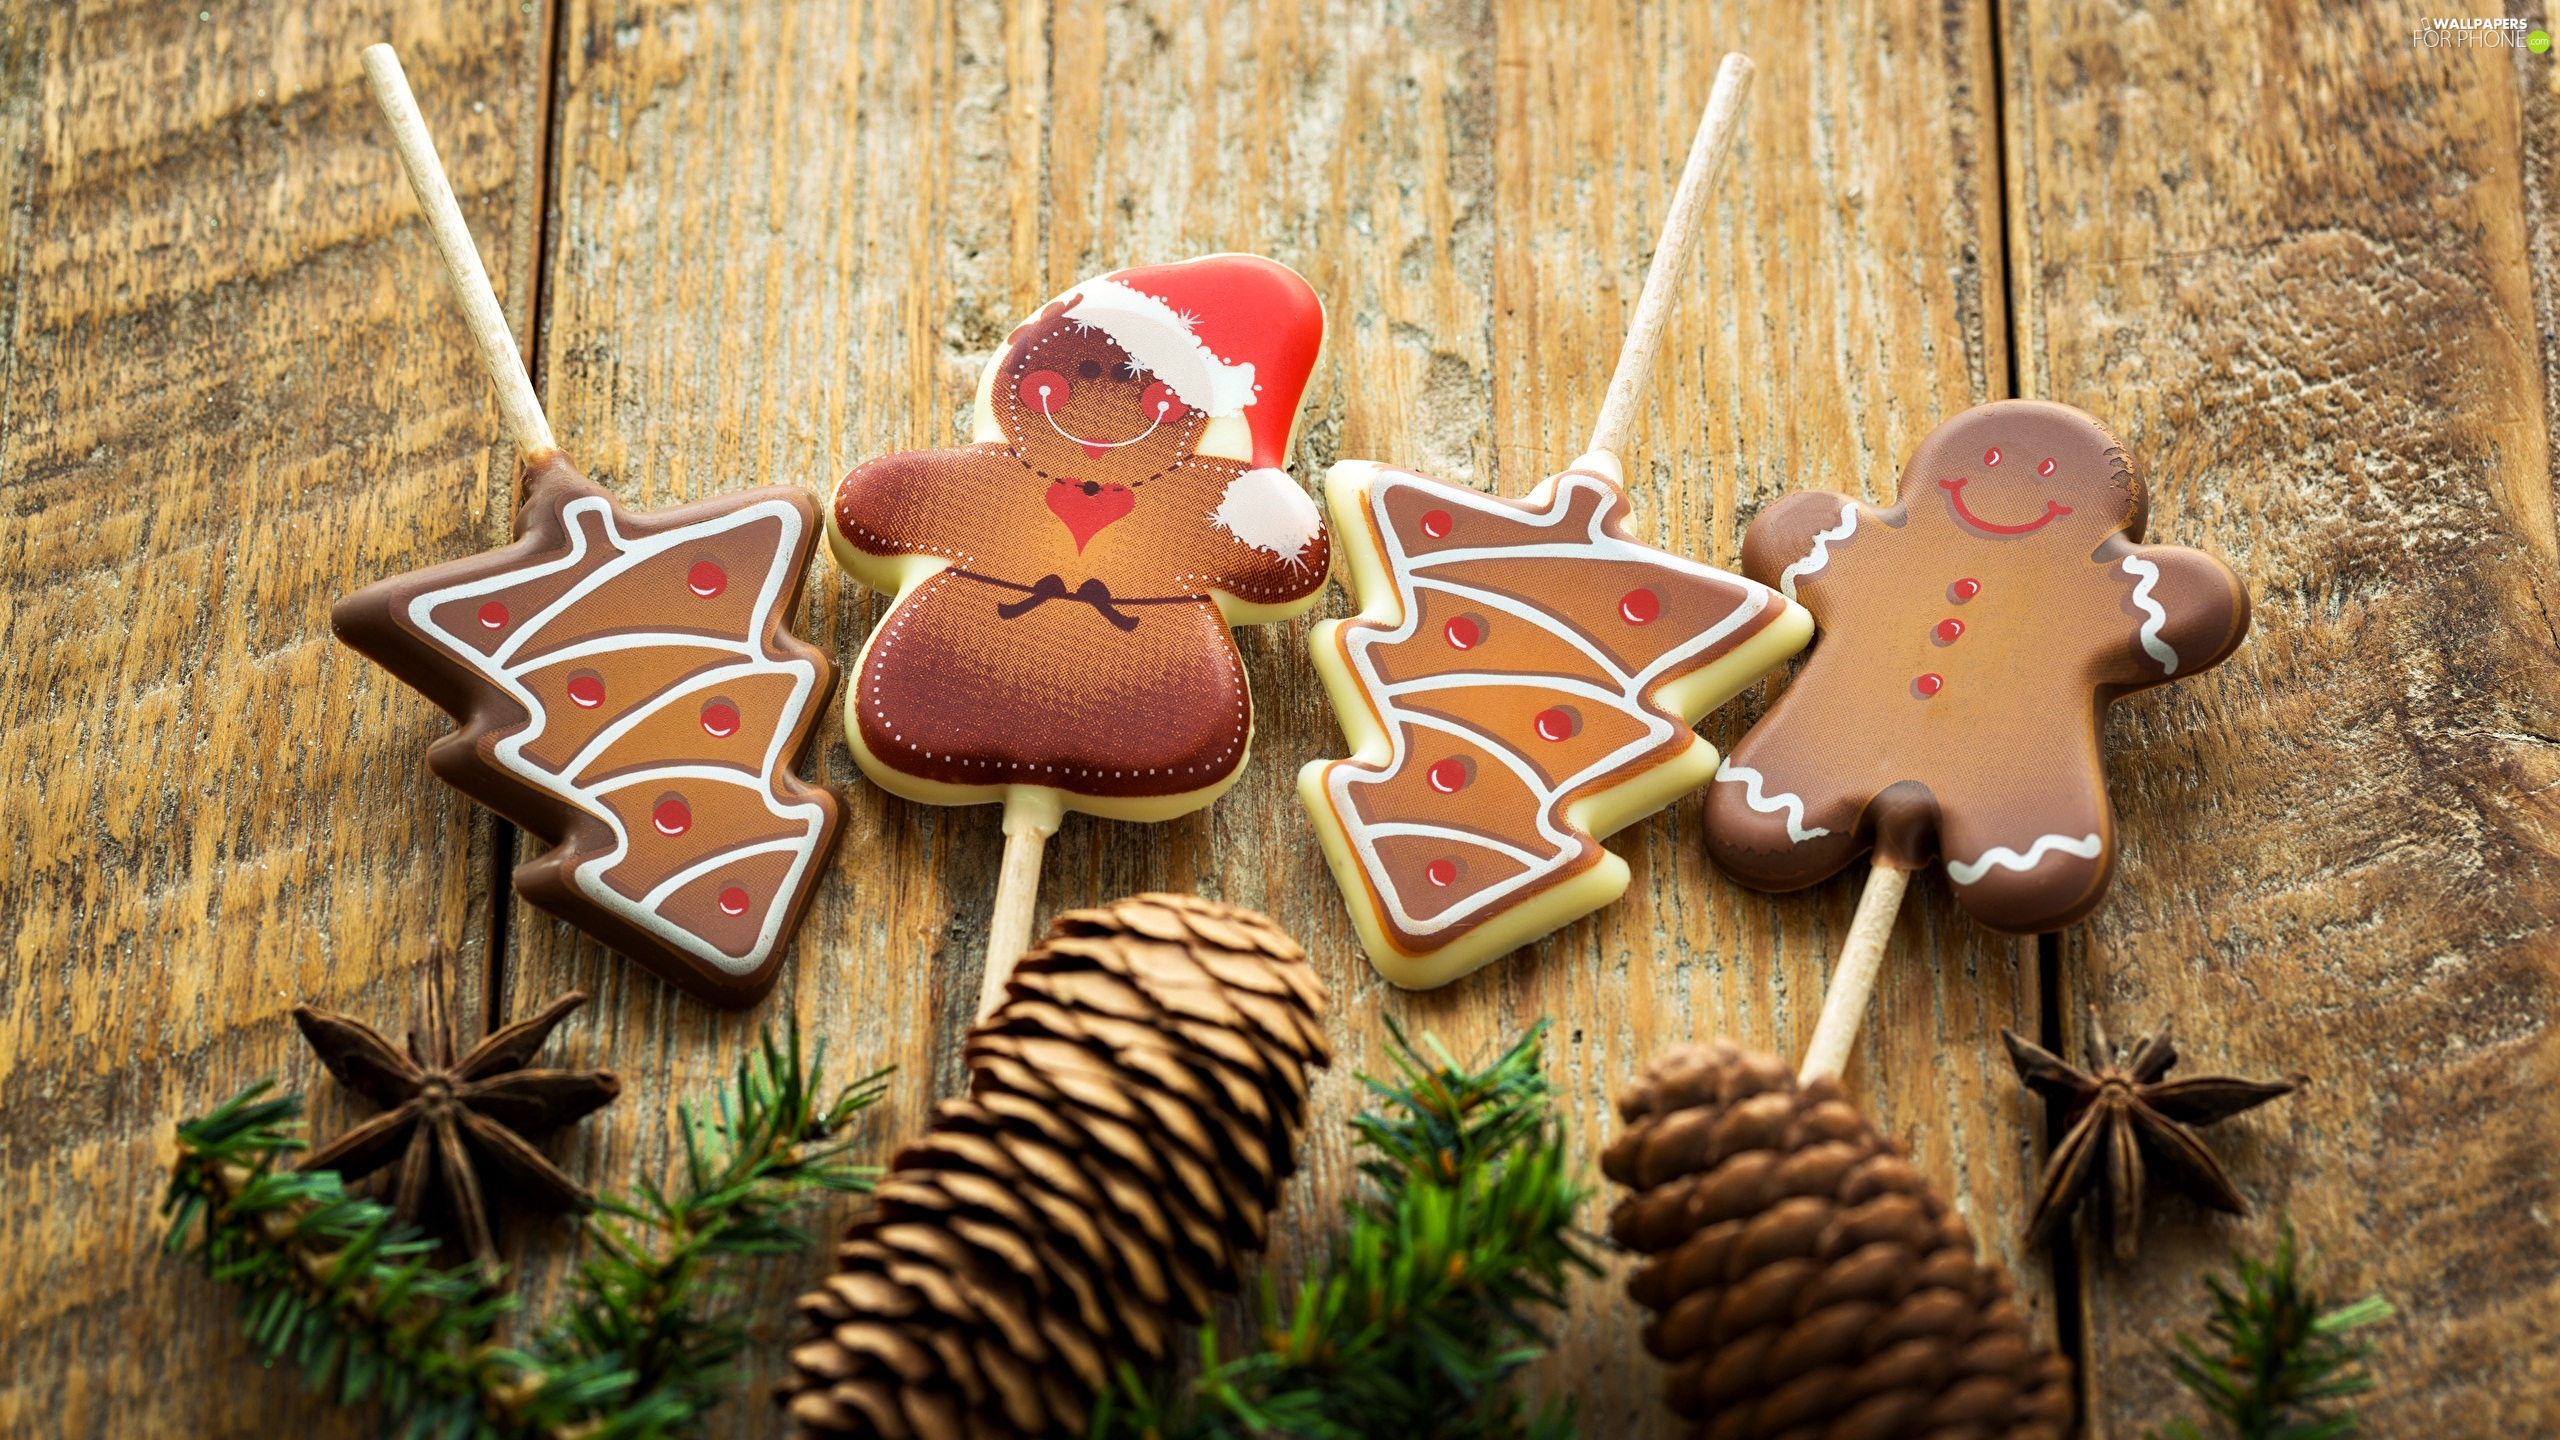 cones, lollipops, ginger, Twigs, Christmas